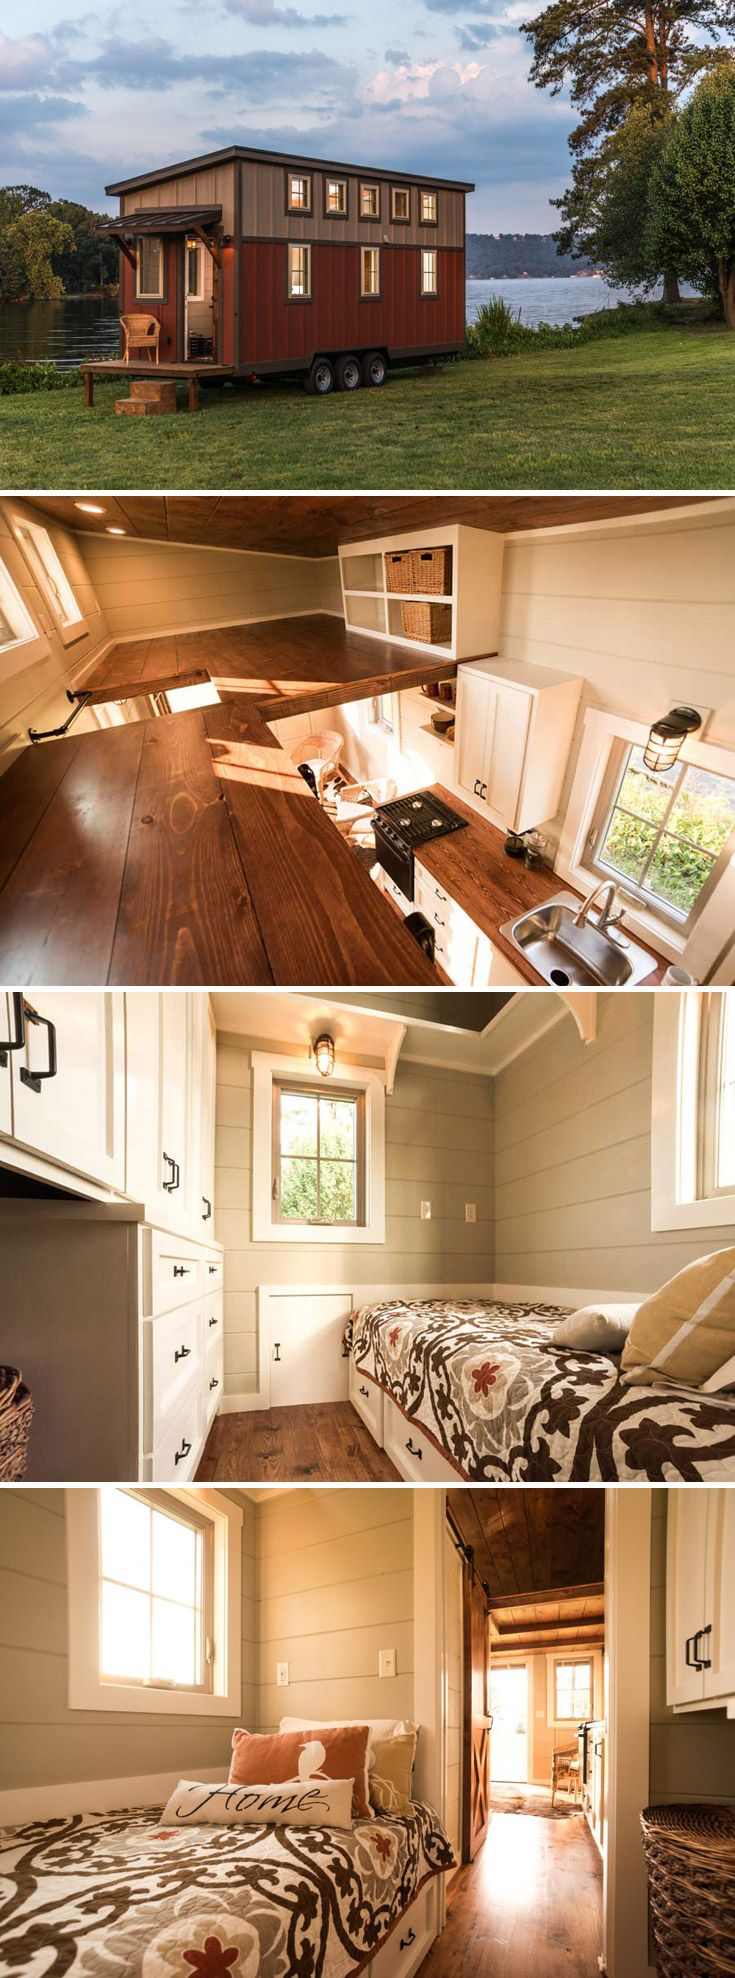 best the tiniest home images on pinterest